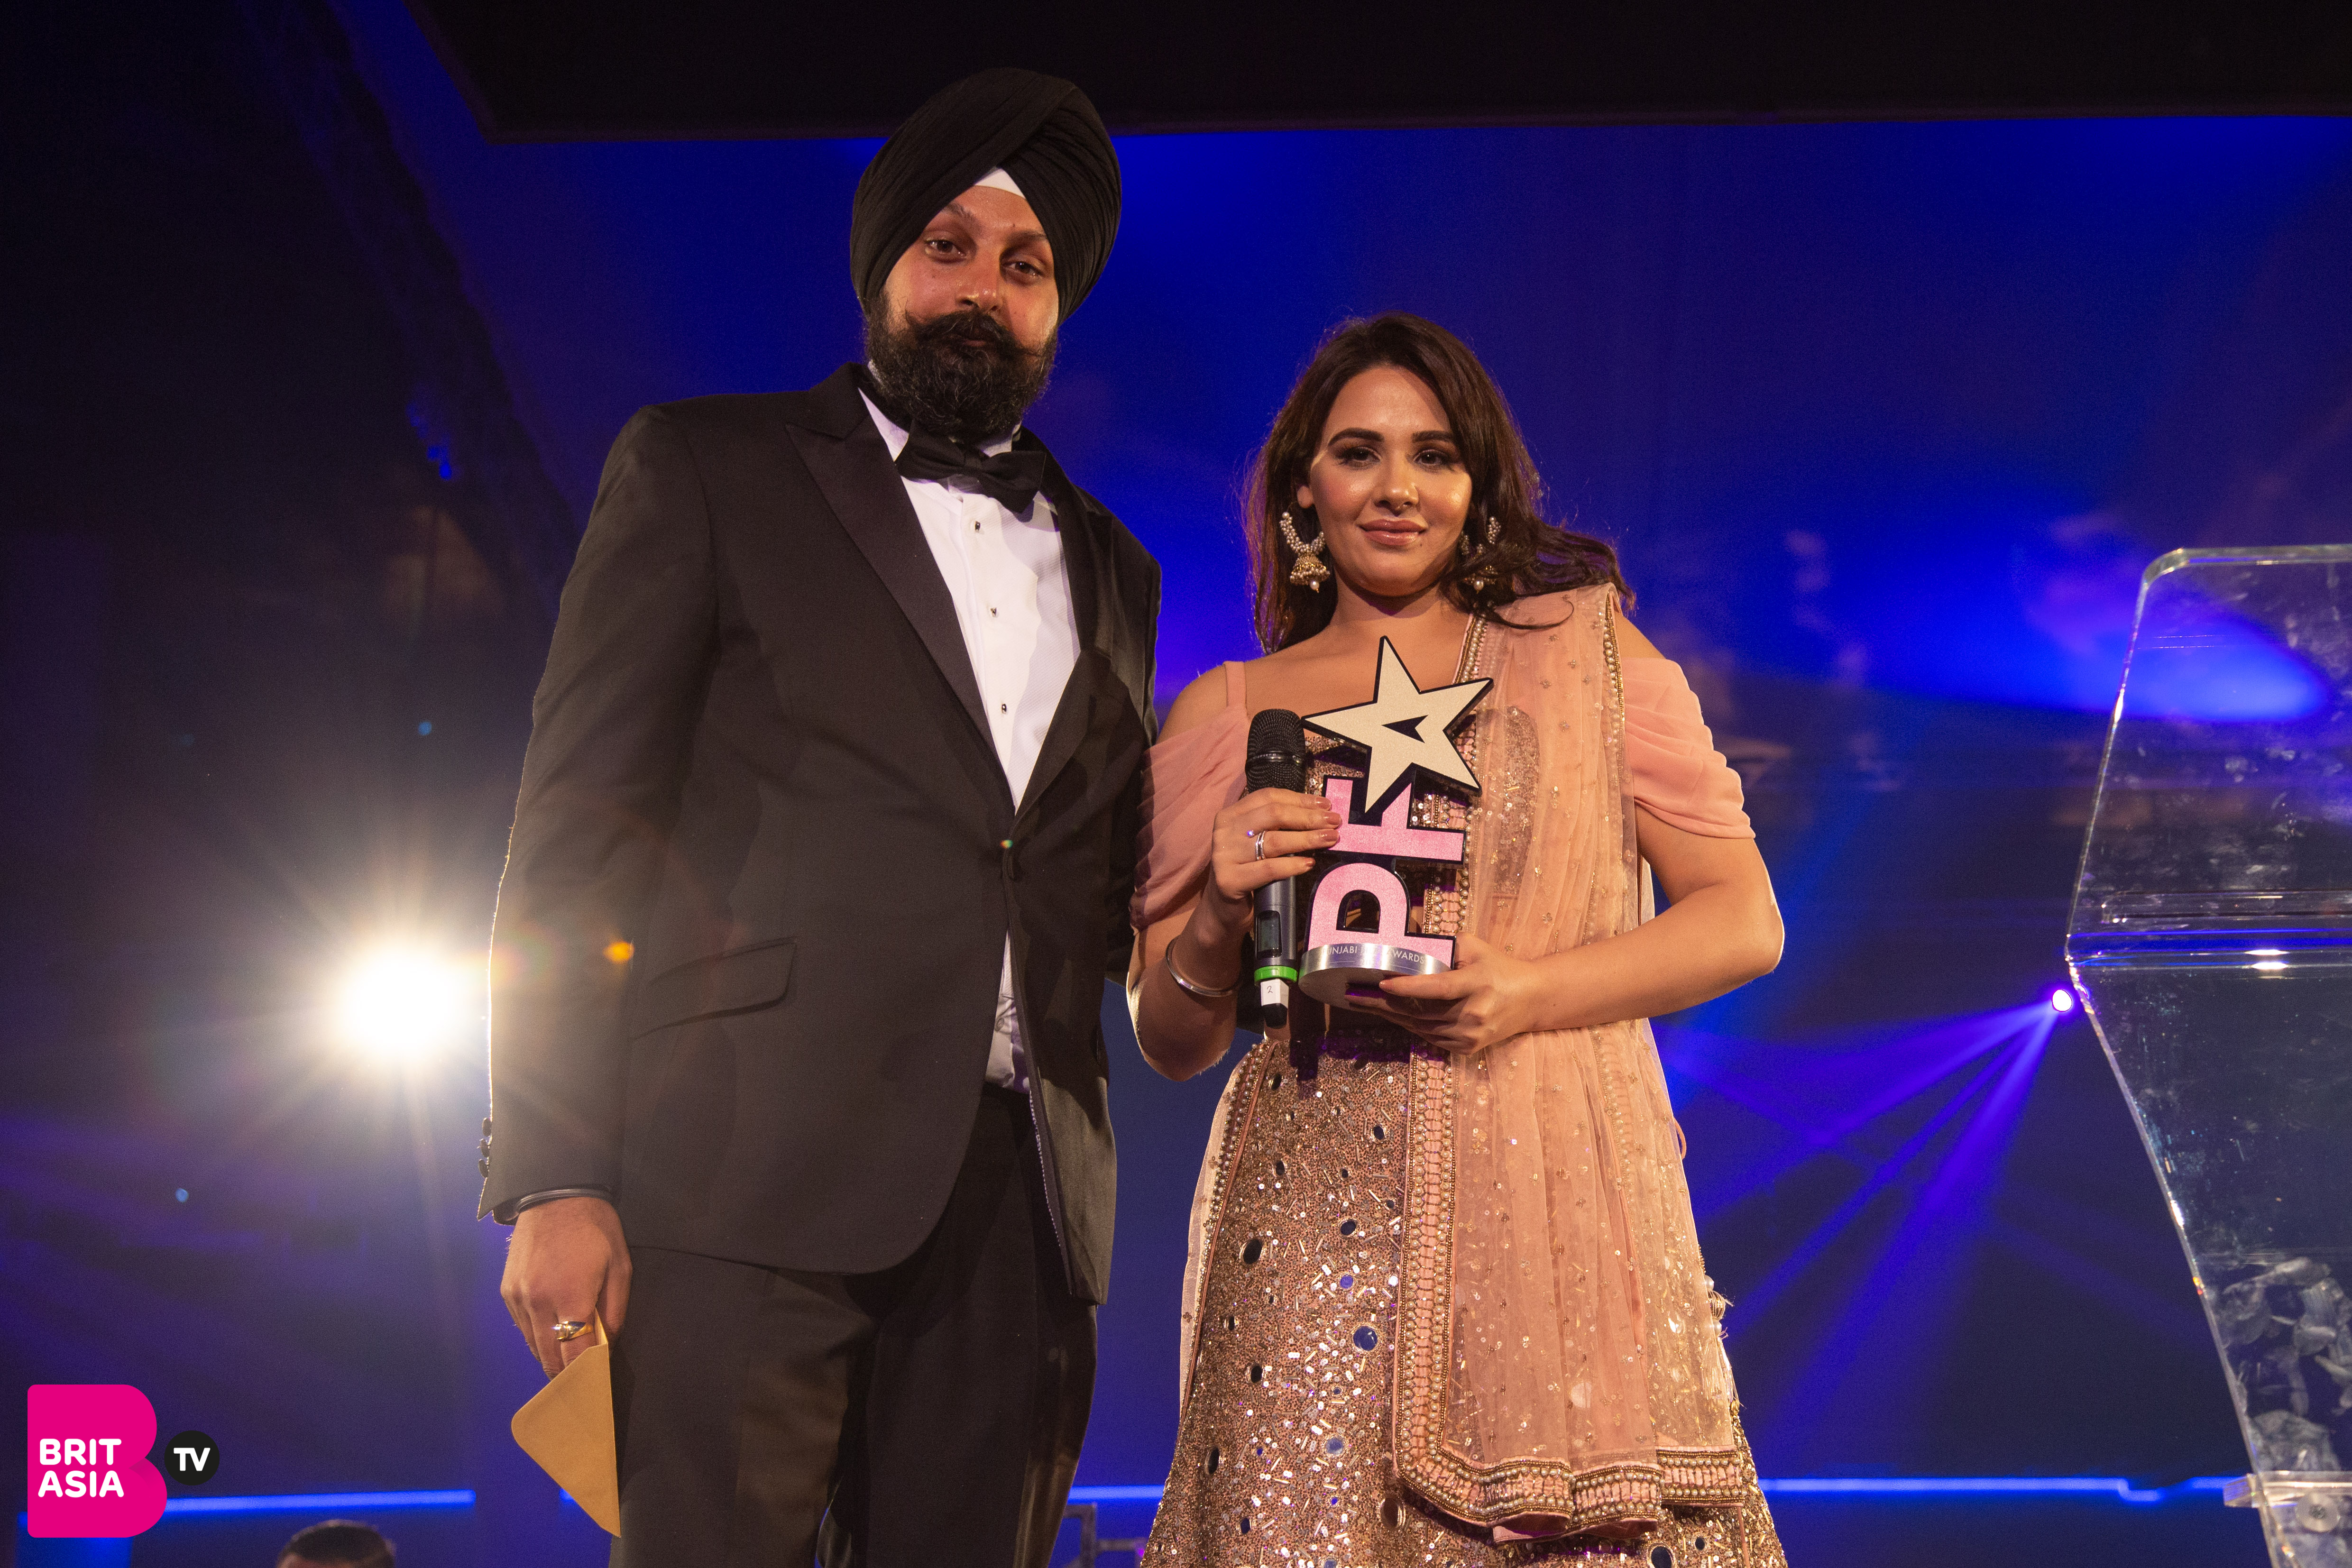 Mandy Takhar collects The Inspiration award presented by CEO of BritAsia TV, Tony Shergill